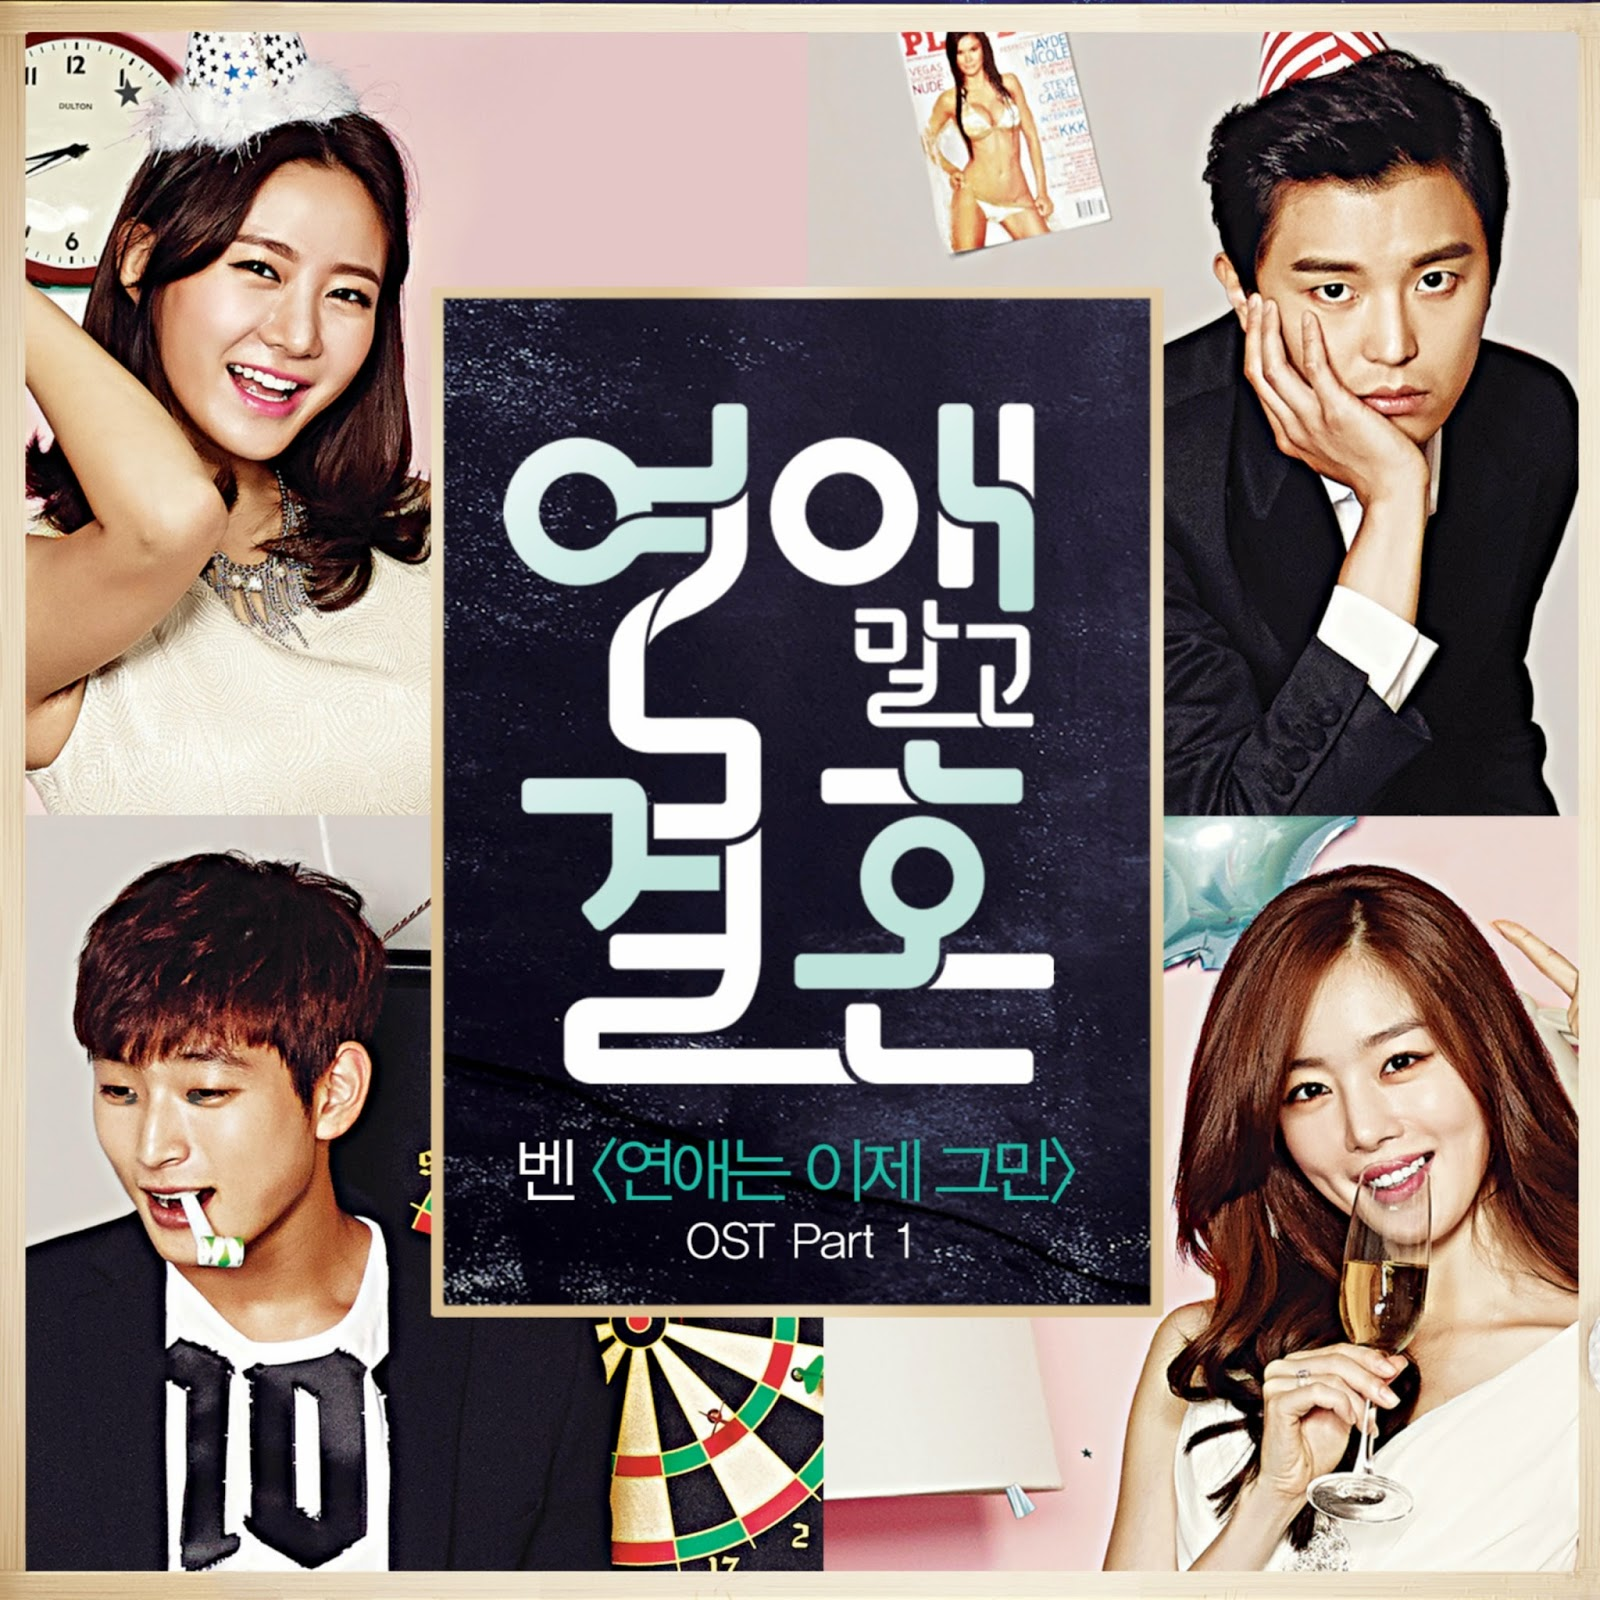 lirik lagu ost marriage not dating part 1 Aug 1, - young, danny ahn (god) – just one day lyrics (marriage not dating ost part 3) dan haruman mam pyeonhi neoreul saranghago sipeo sep 26, - your browser does not currently recognize any of the video formats available.